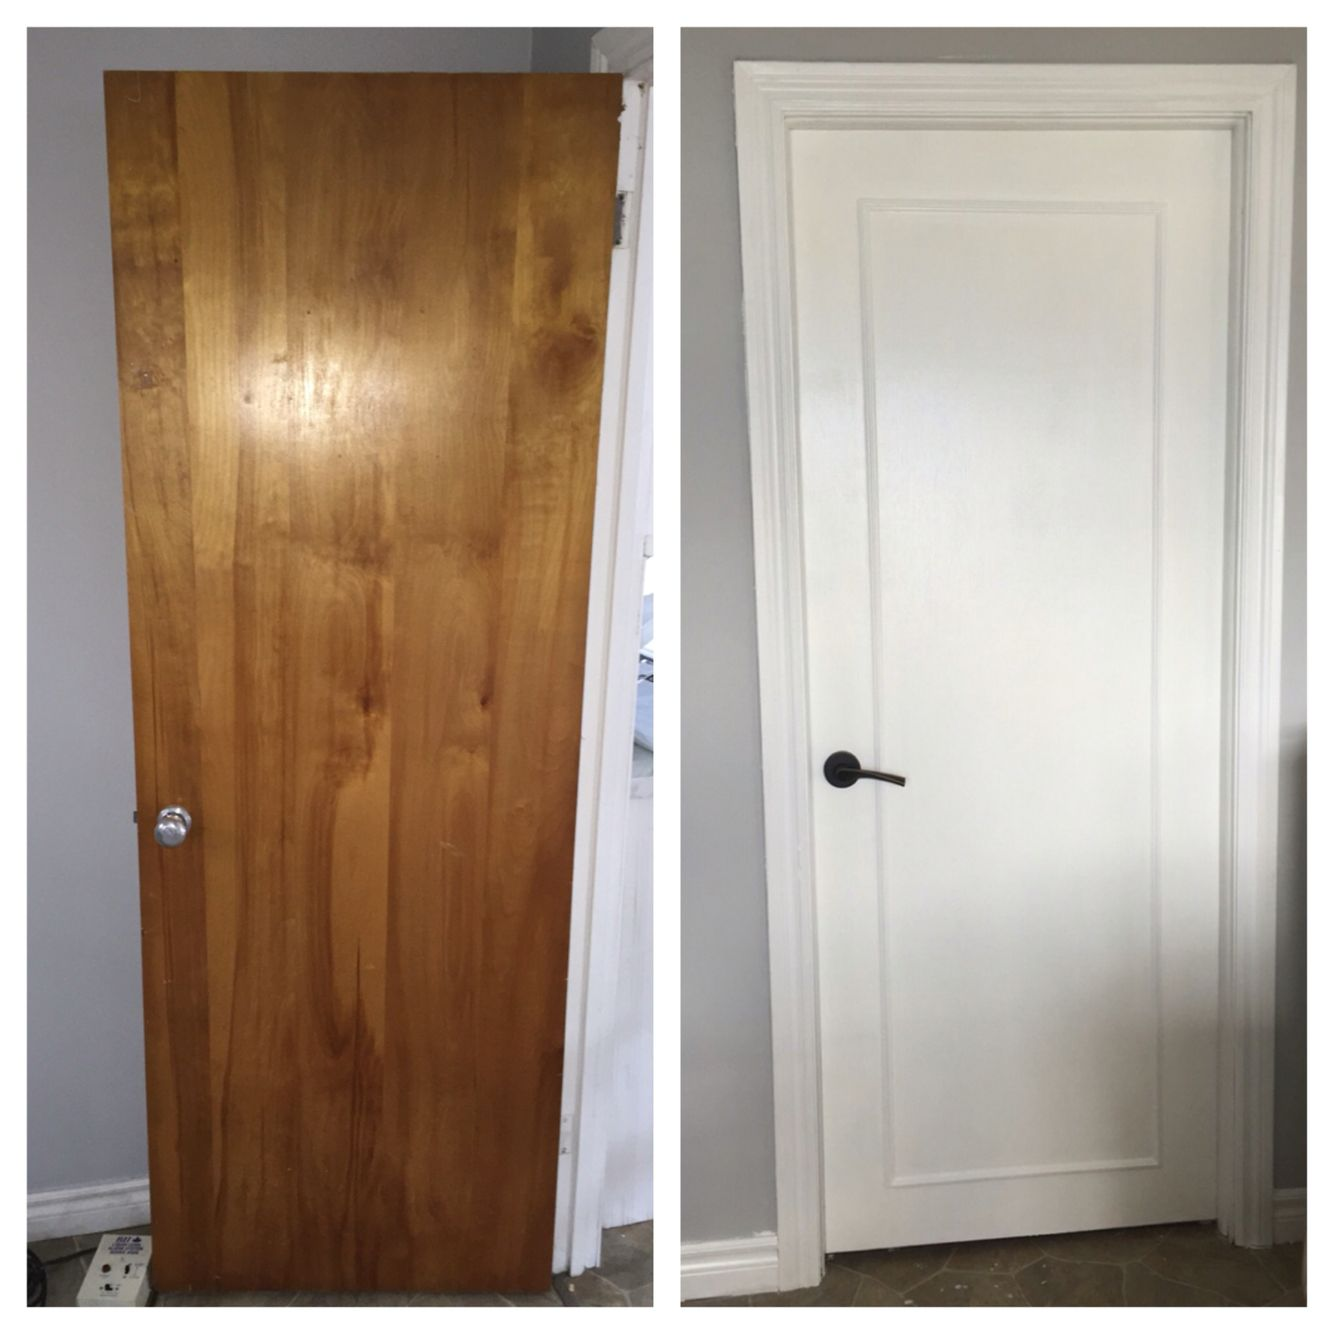 Wood Doors Painted White Of Updated Old Wood Doors To A Modern Look With Wood Trim